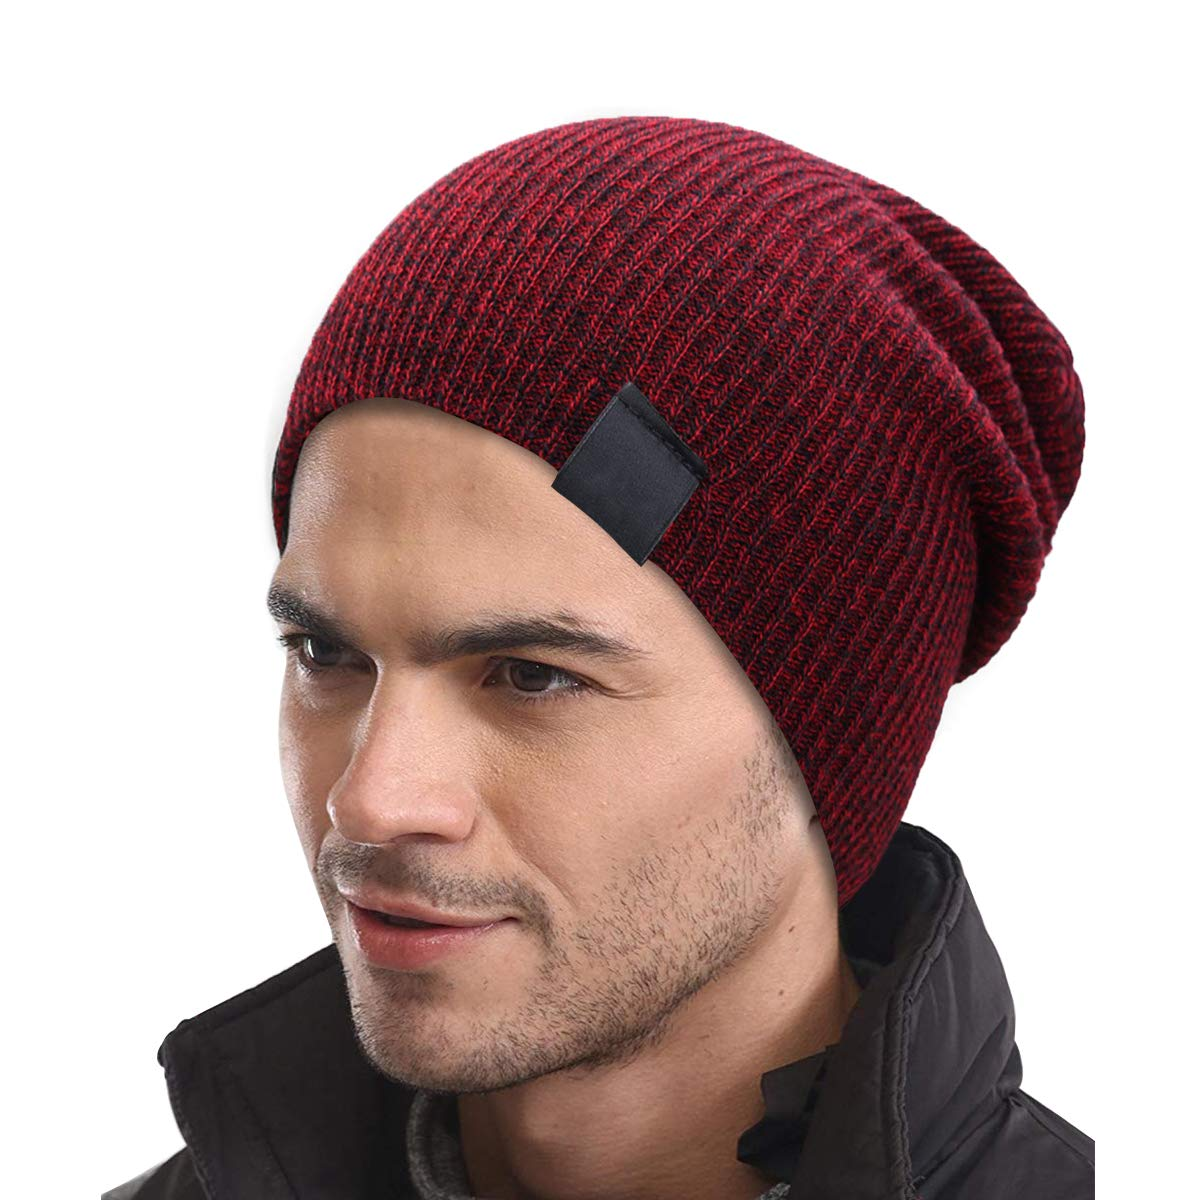 Rehomy Unisex Winter Warm Knit Hat Outdoor Baggy Beanie Cap Slouchy Ski Cap for Cycling Running Walking